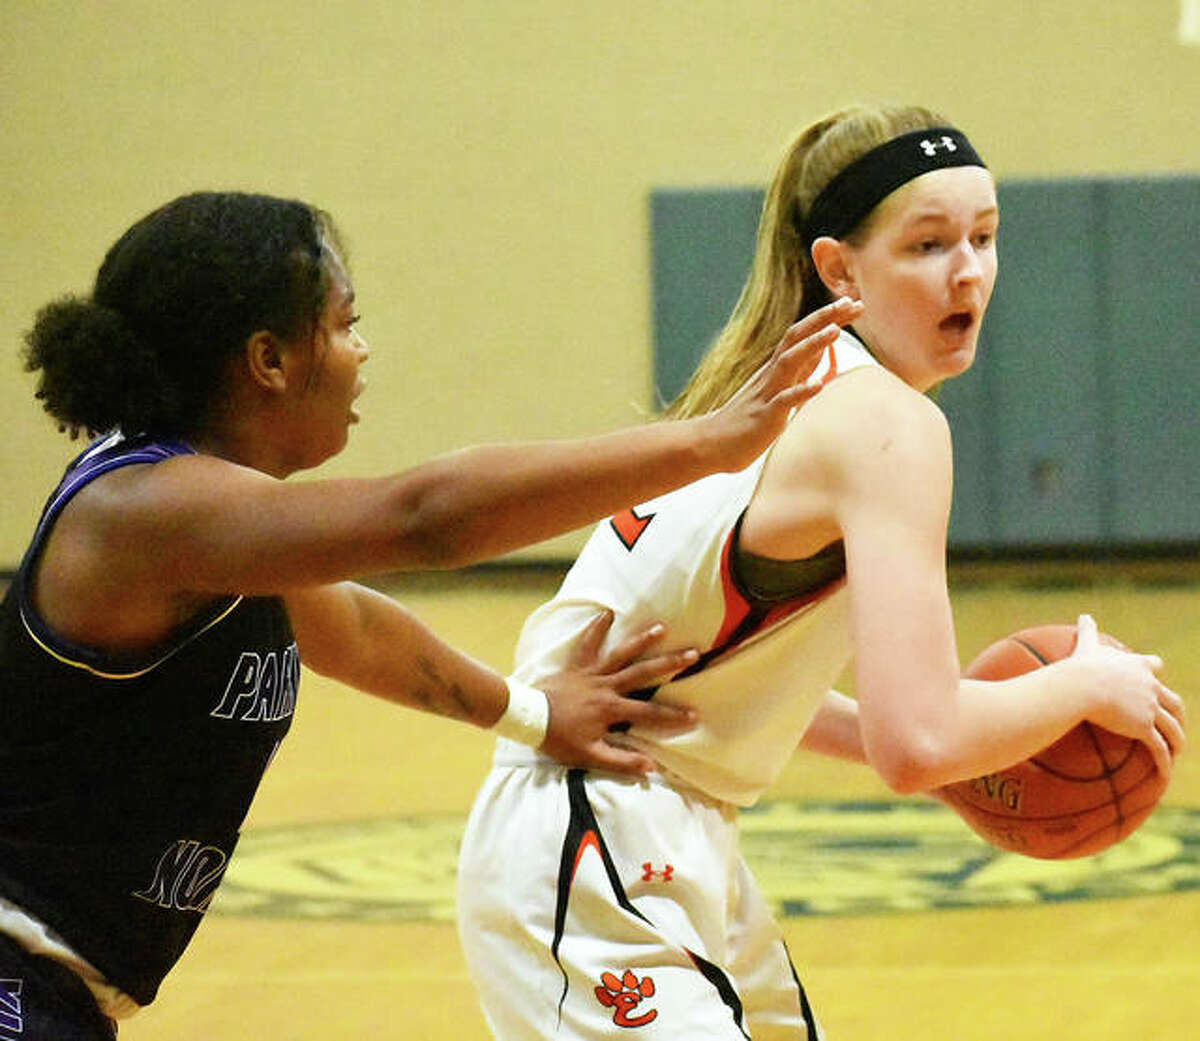 Edwardsville forward Katelynne Roberts looks for an open teammate during the second quarter against Parkway North.